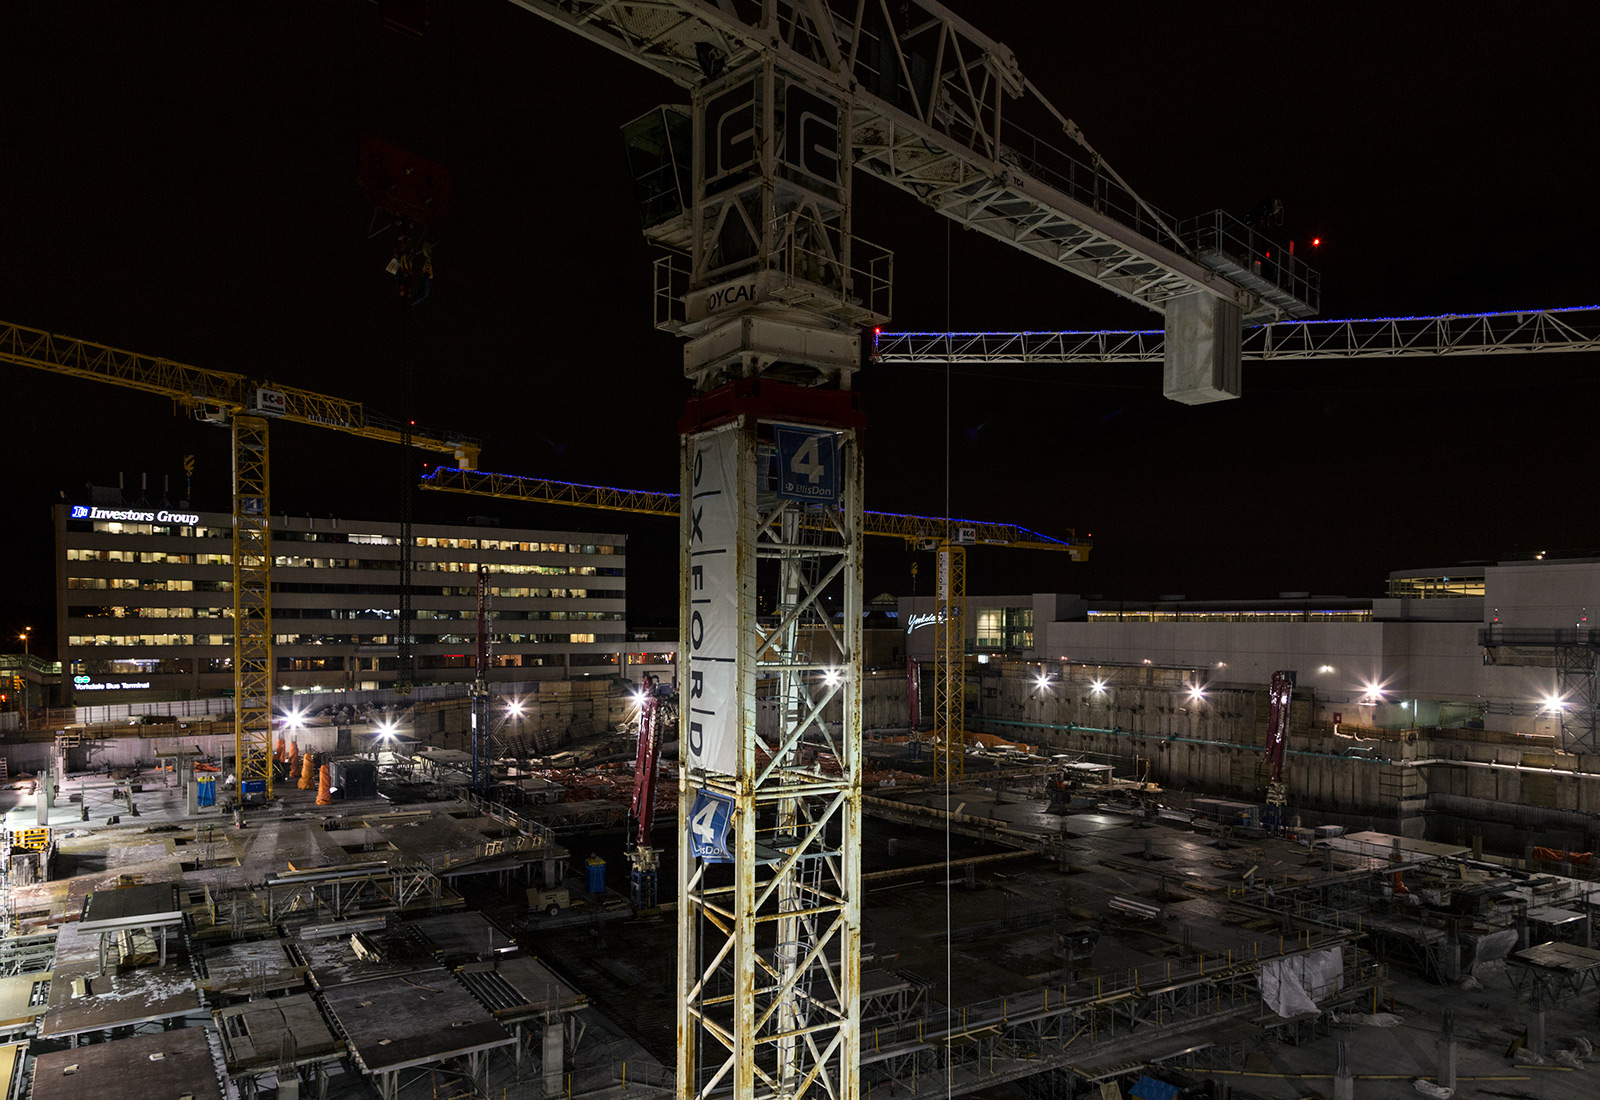 20150102. Toronto's Yorkdale Mall expansion construction site is